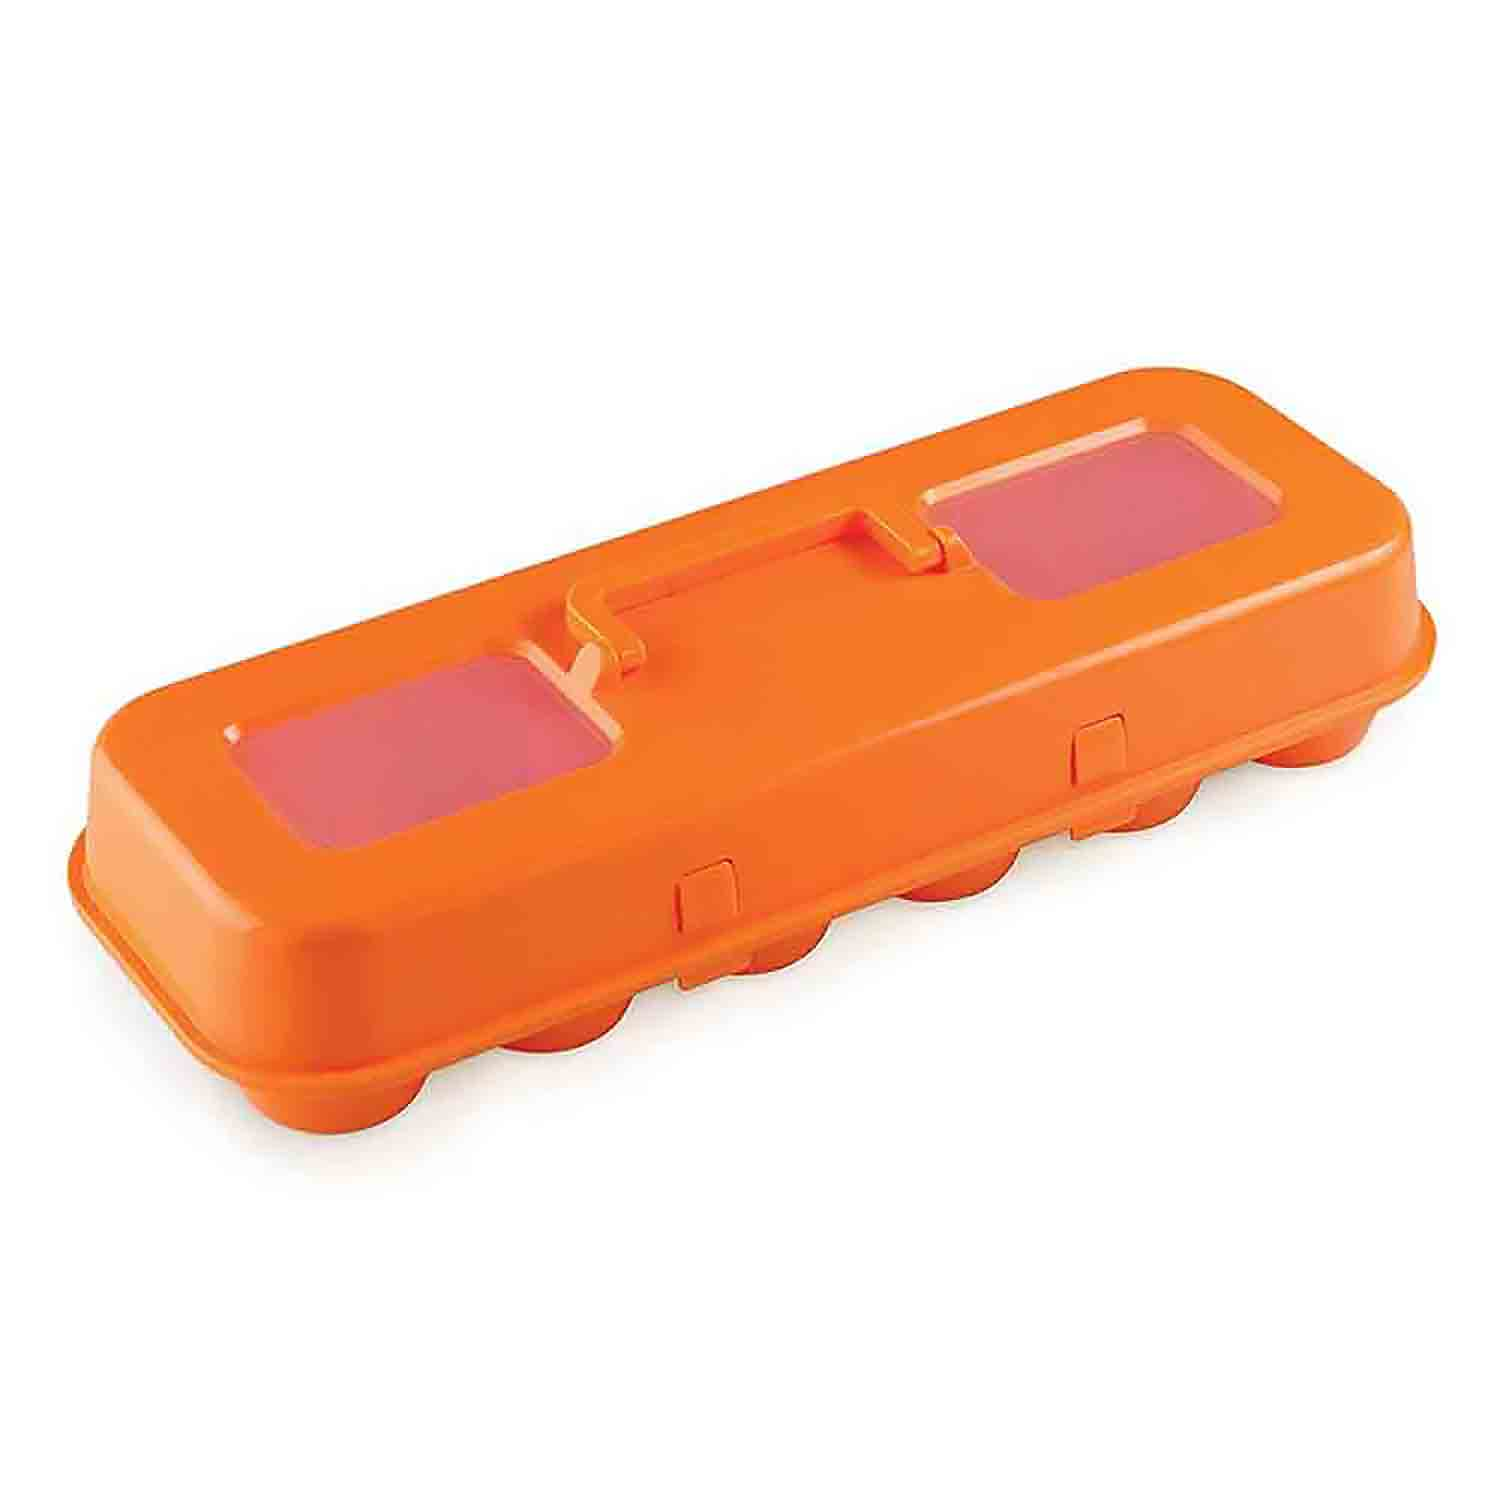 Orange Cupcake Egg Carton Carrier